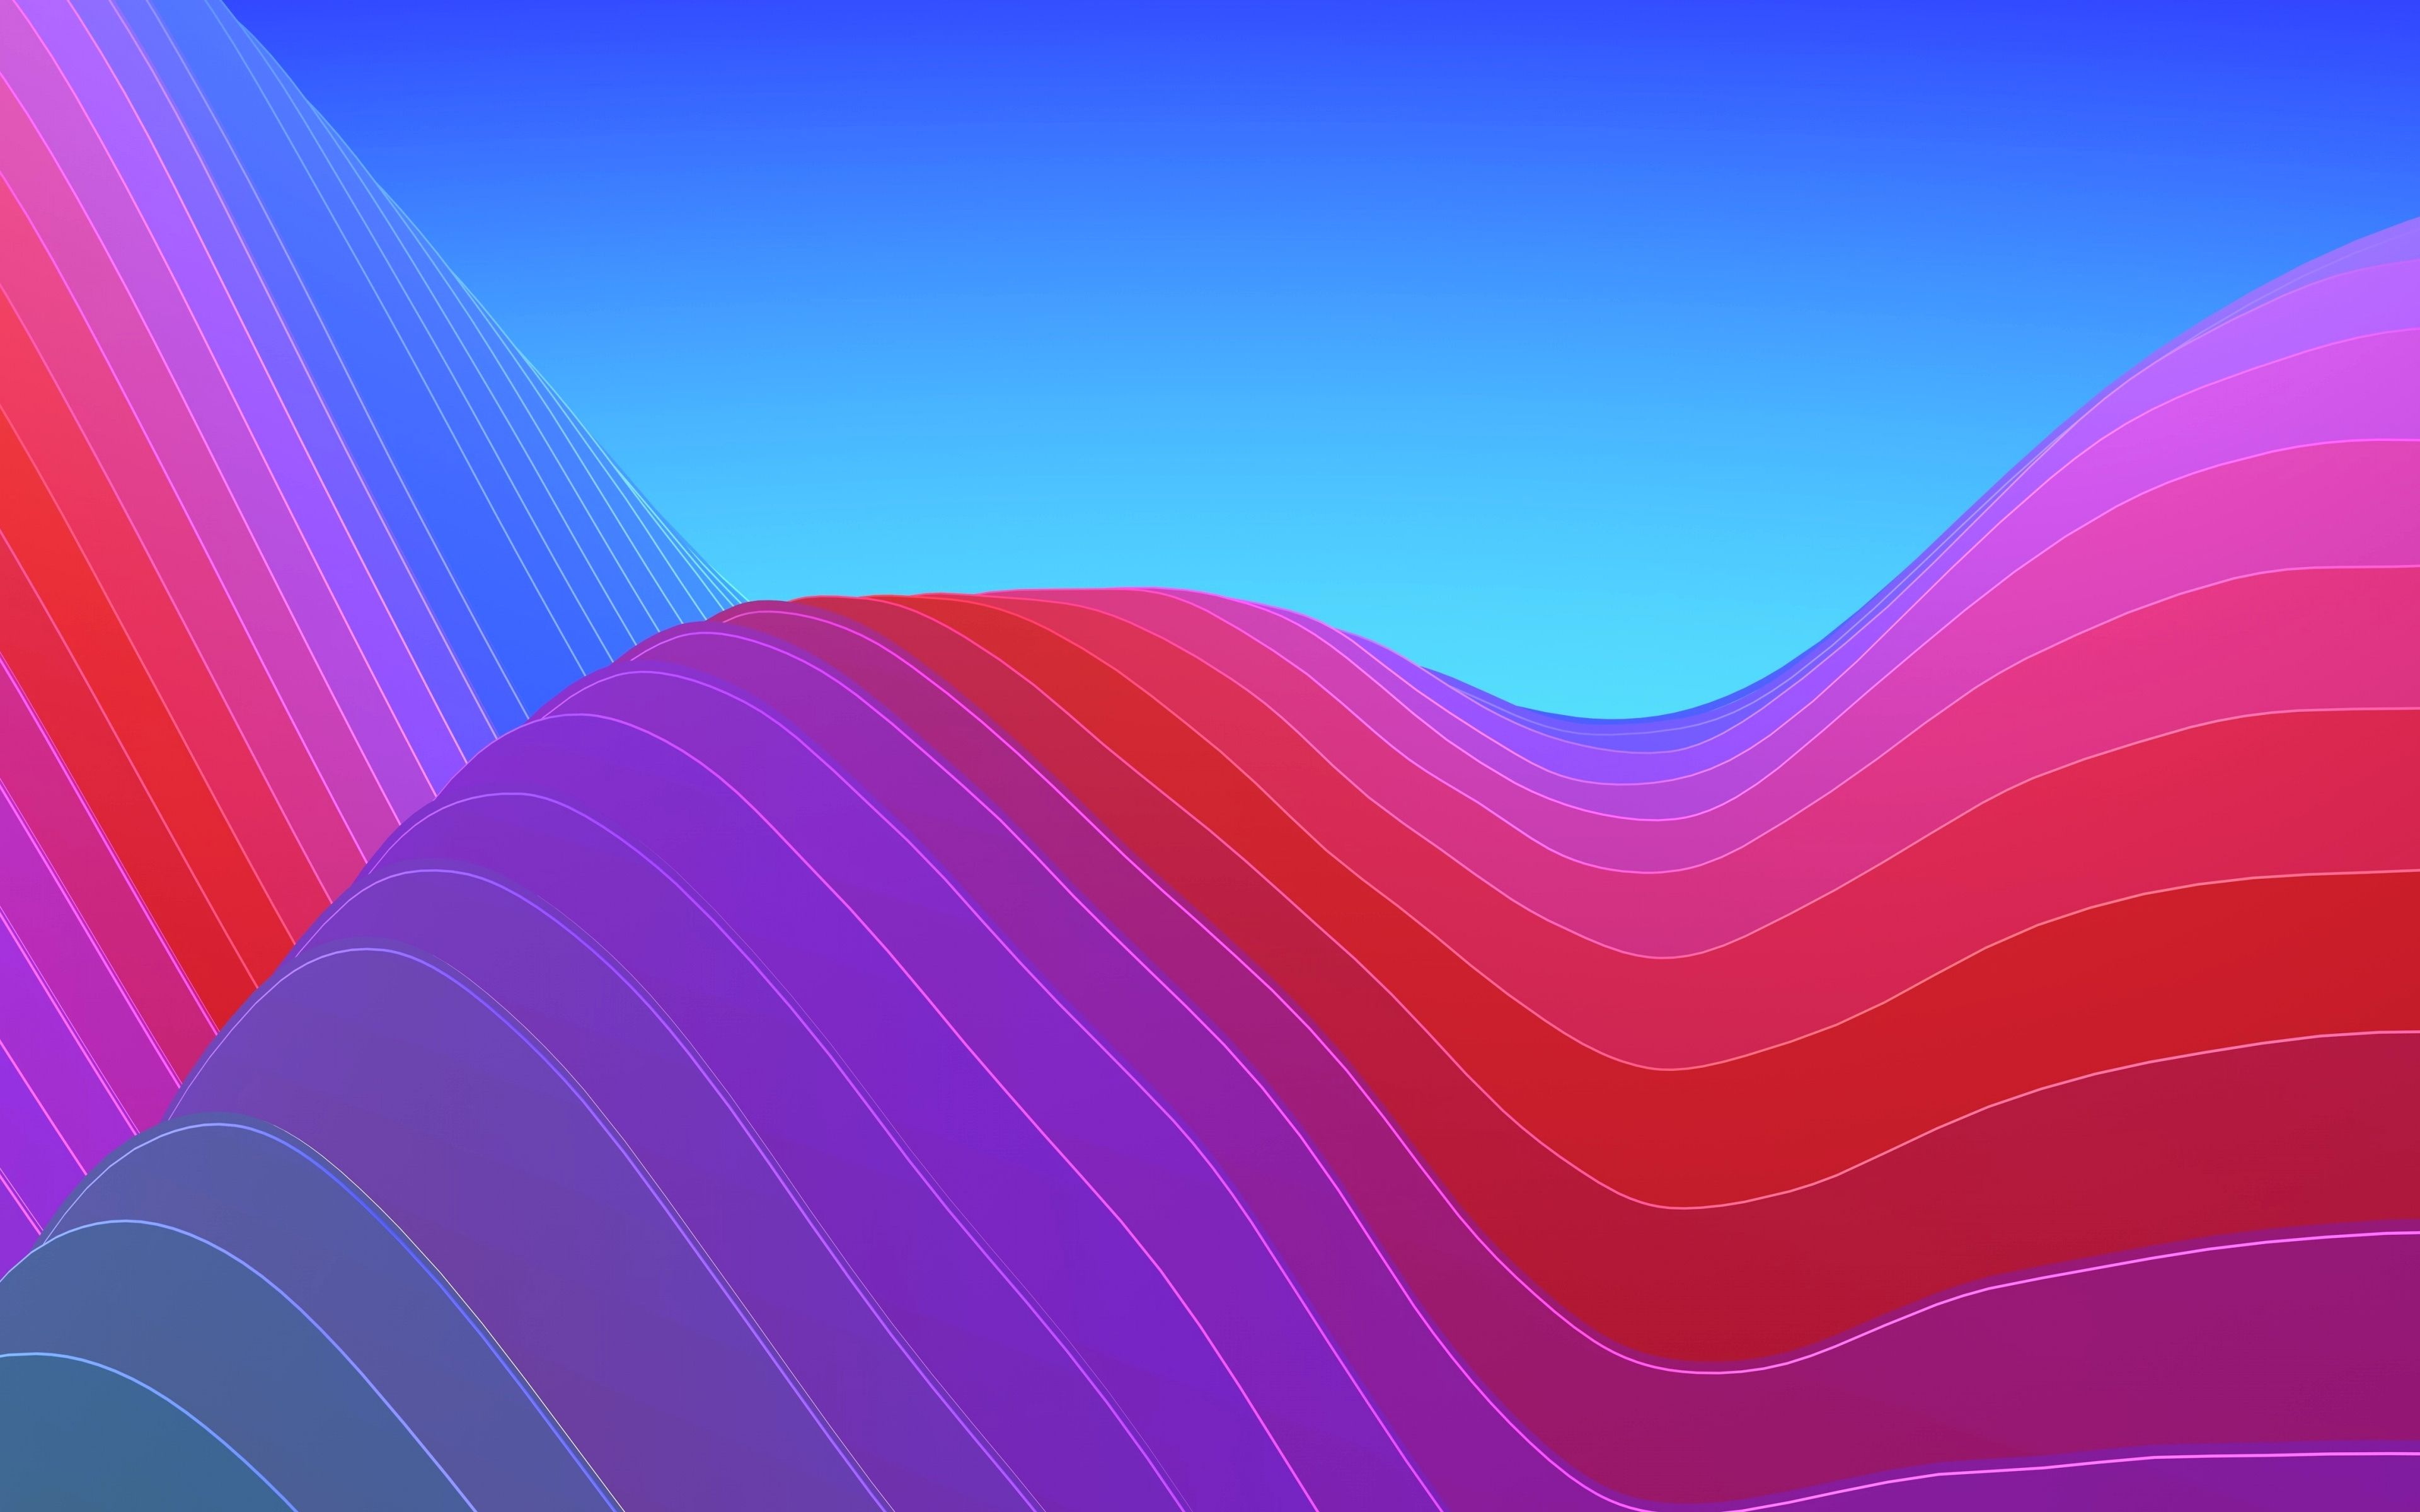 Iphone Wallpaper 4k Ios 10 Gallery Abstract Waves Ios 11 Wallpaper Abstract